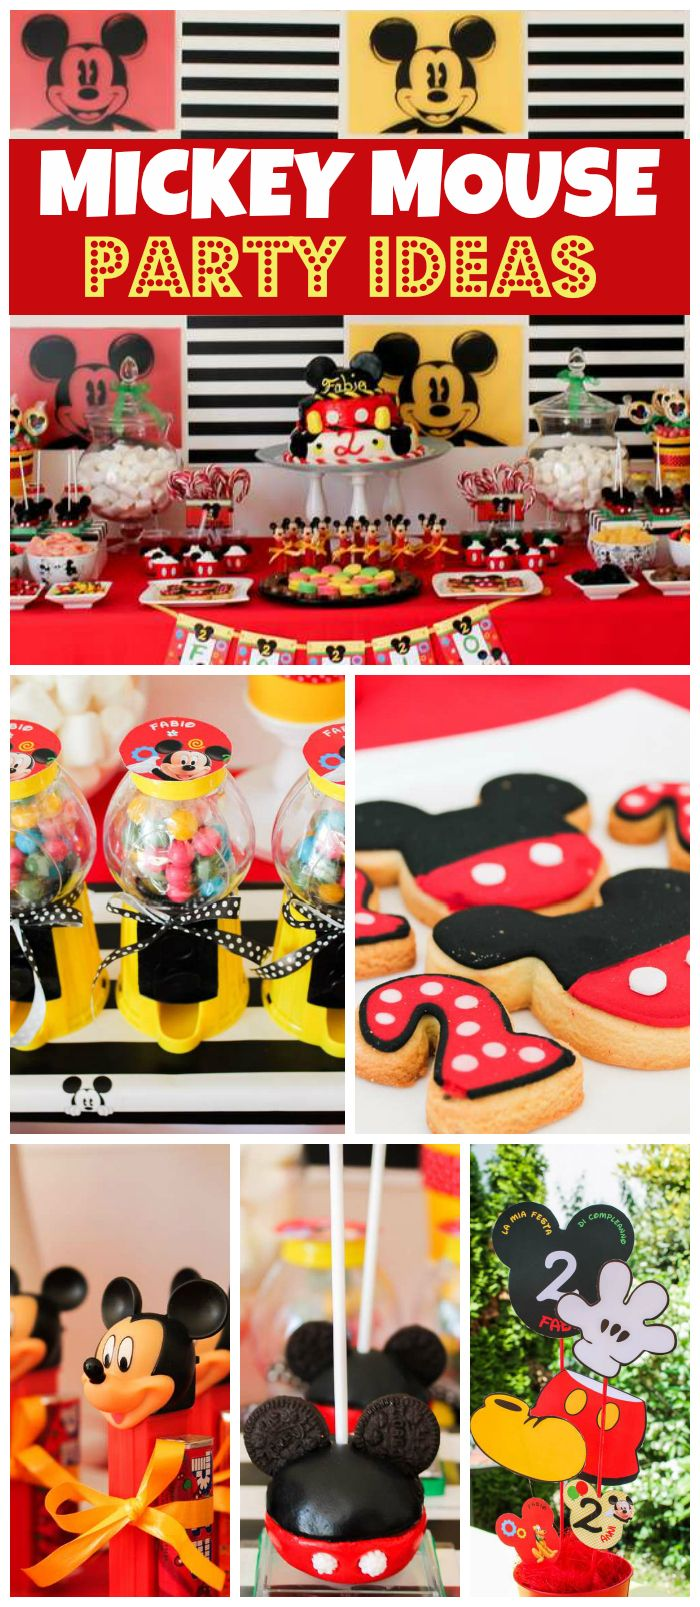 A red, yellow and black Mickey Mouse birthday party with cute cake pops and party favors! See more party planning ideas at CatchMyParty.com!